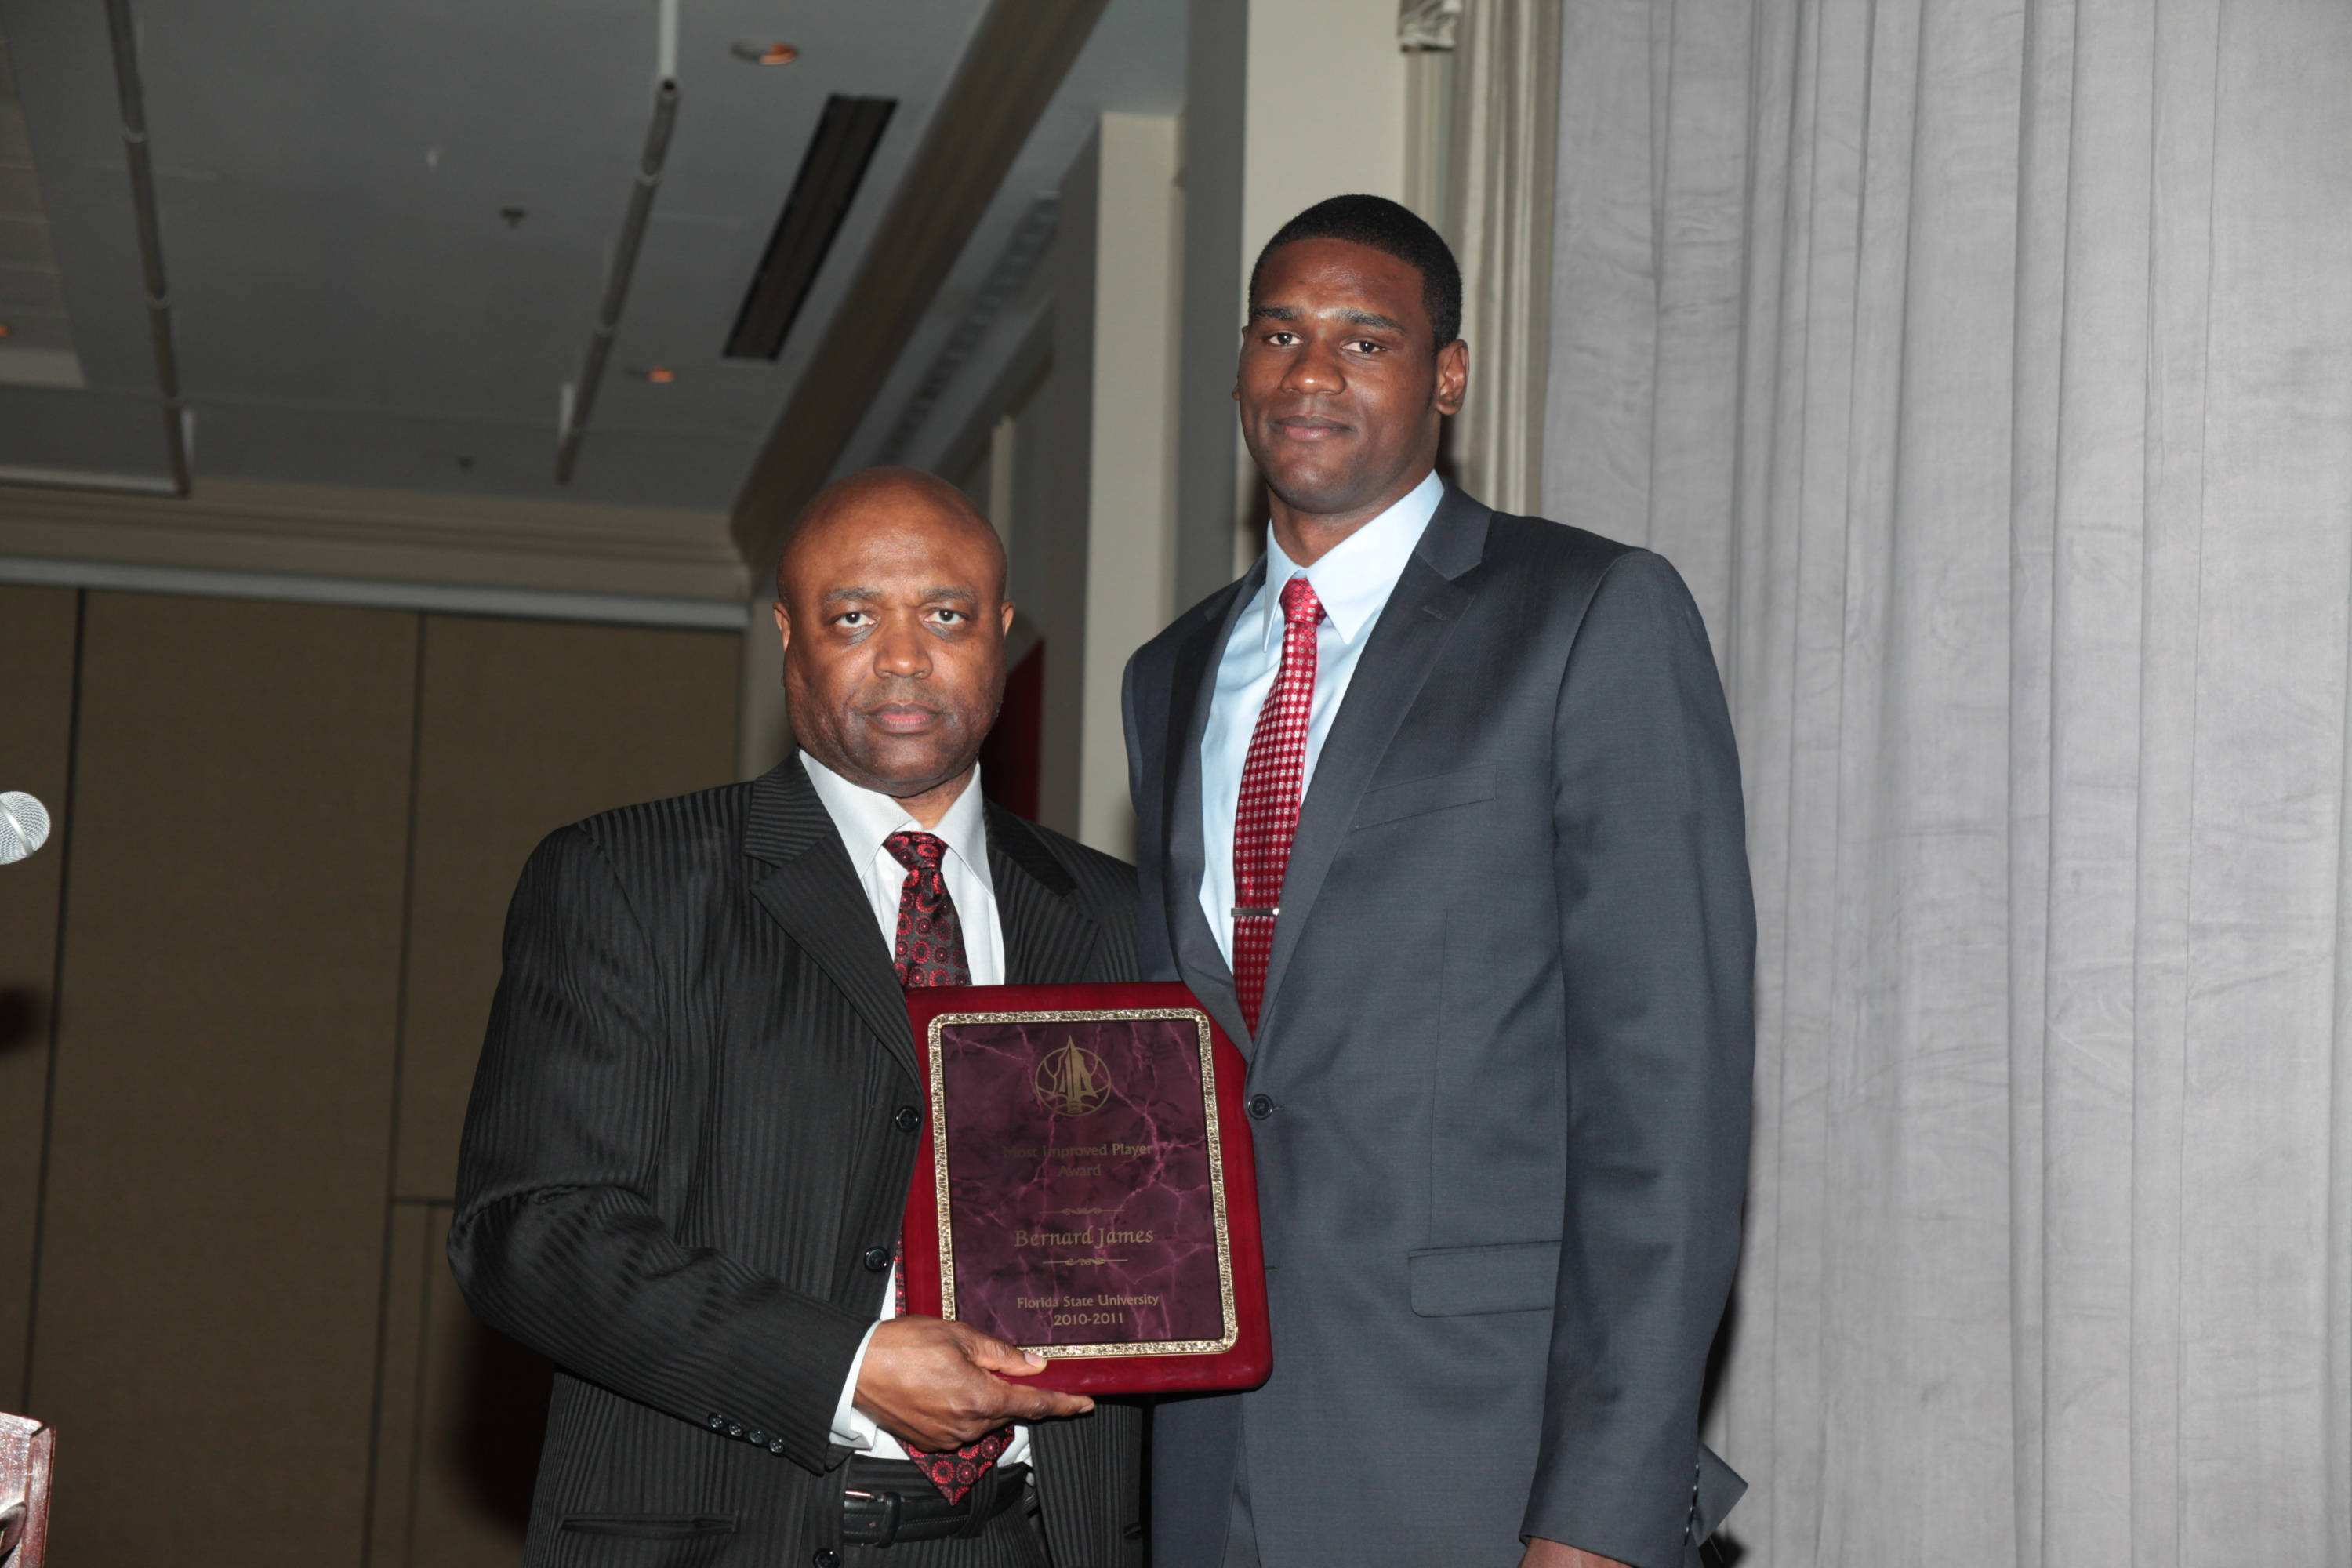 2011 Men's Basketball Banquet - Bernard James